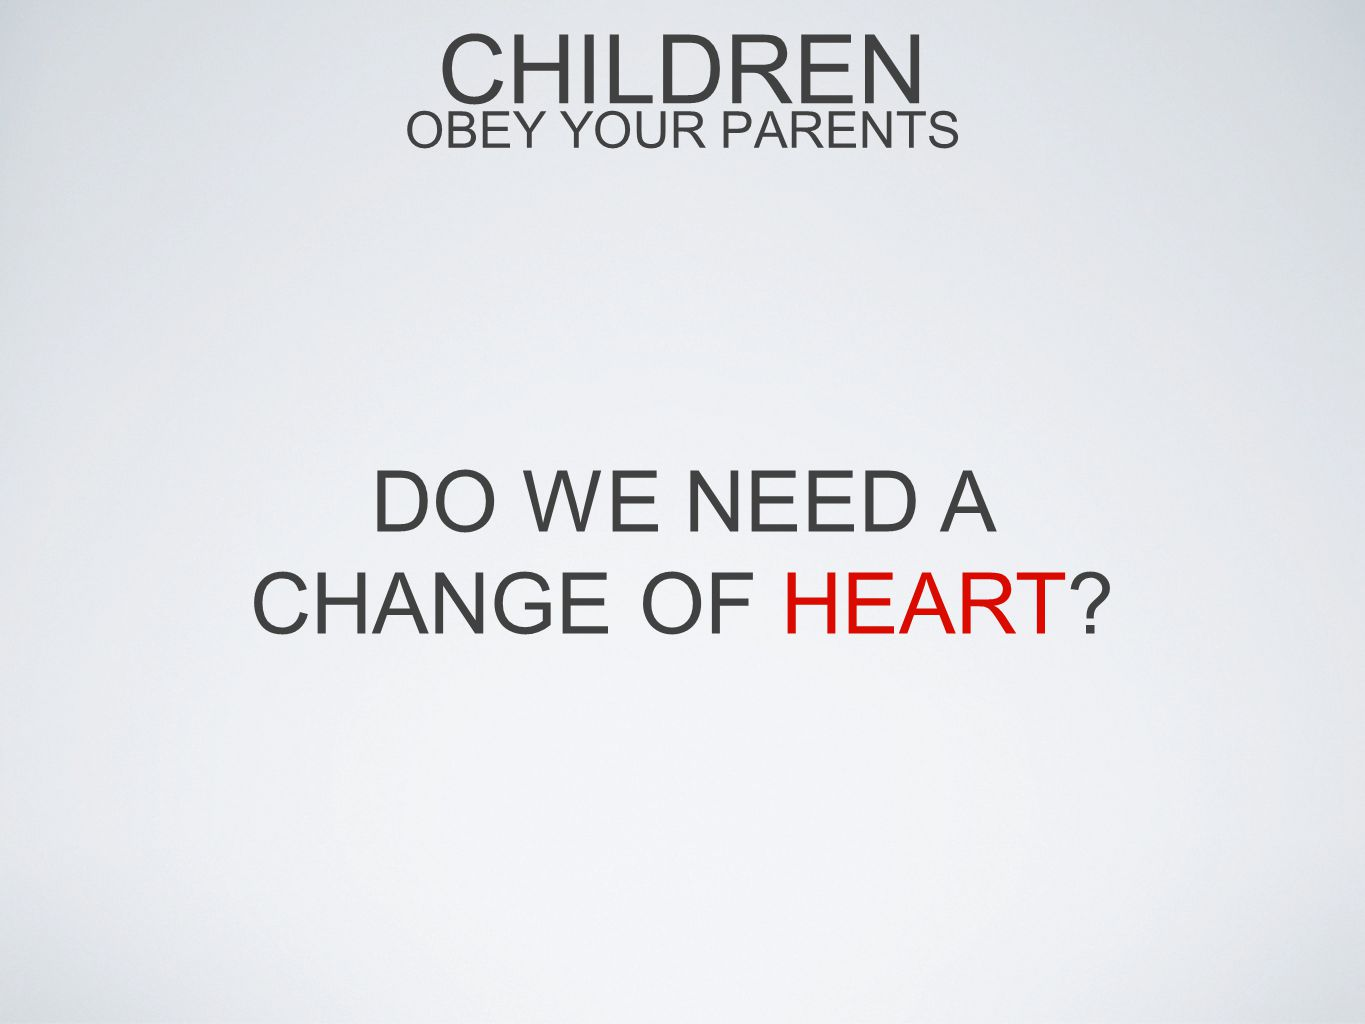 CHILDREN OBEY YOUR PARENTS DO WE NEED A CHANGE OF HEART?